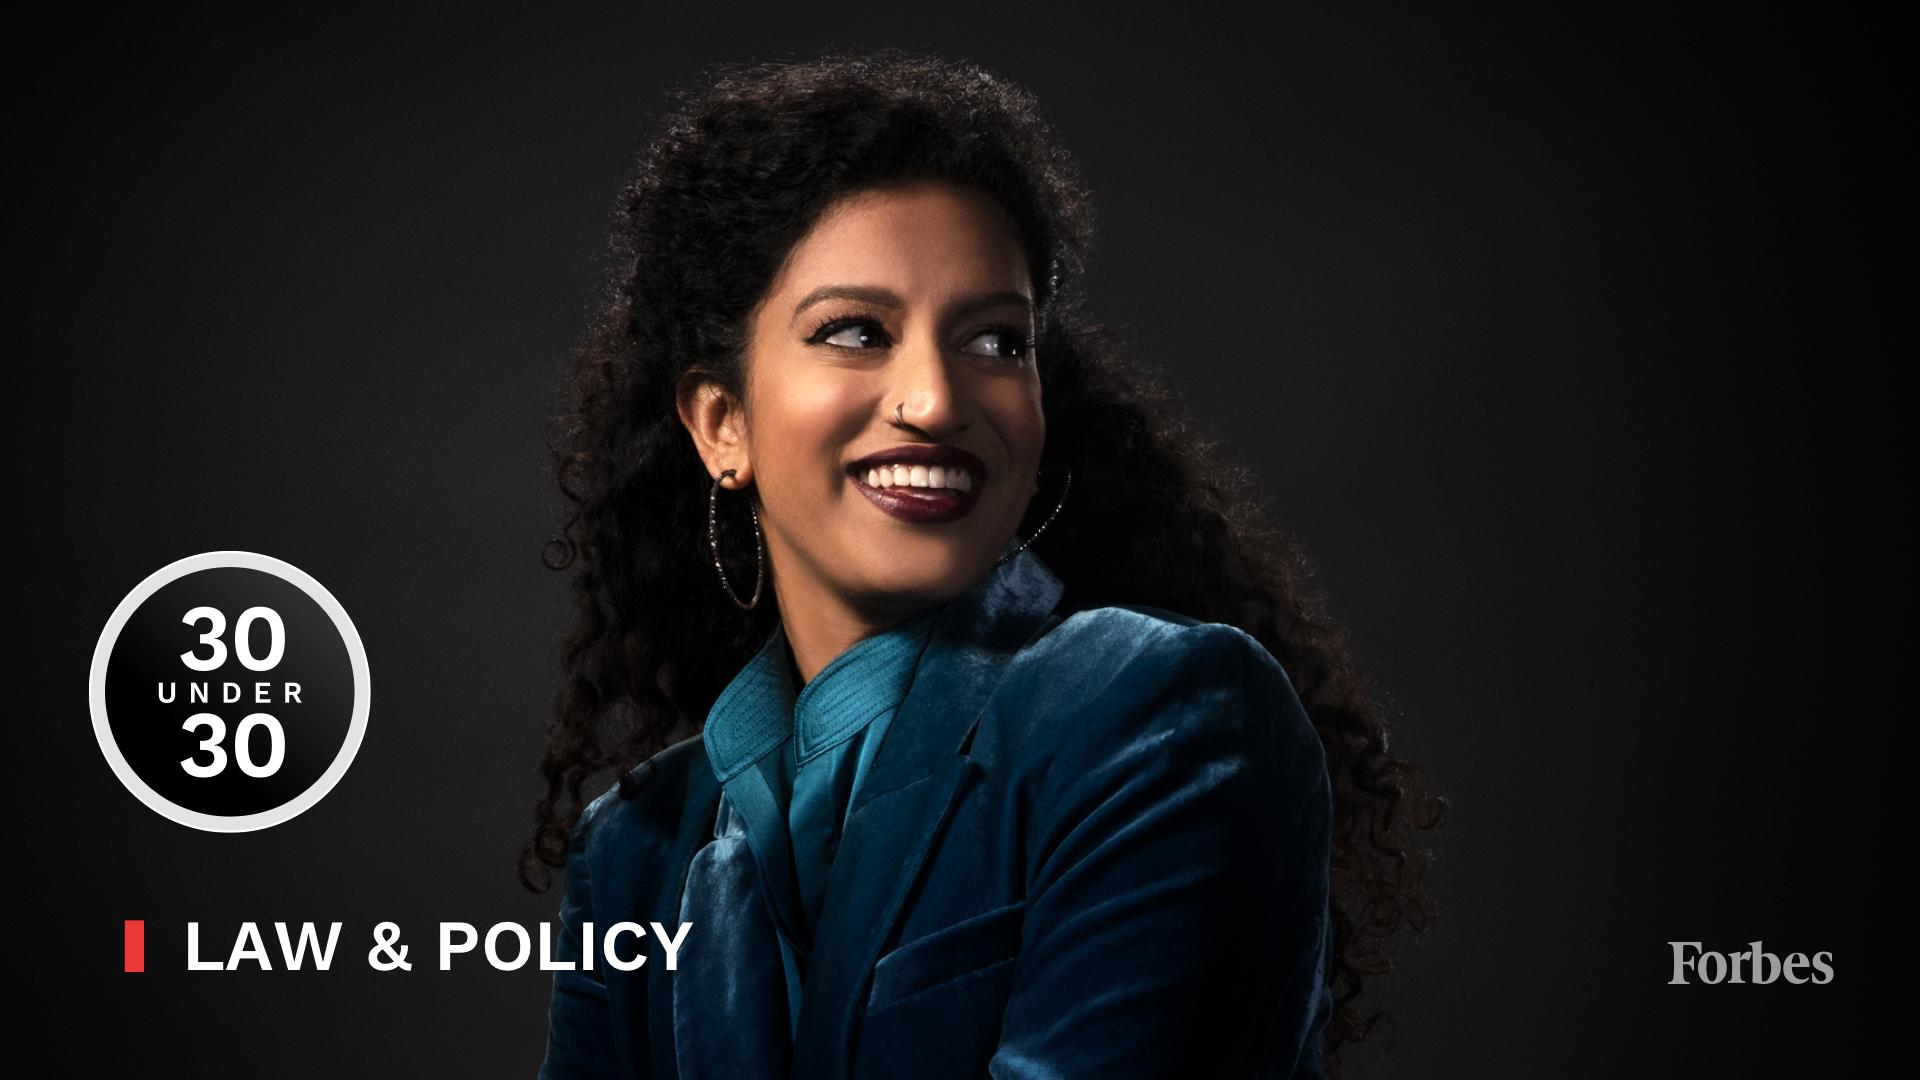 30 Under 30 2020 Law Policy 1920x1080